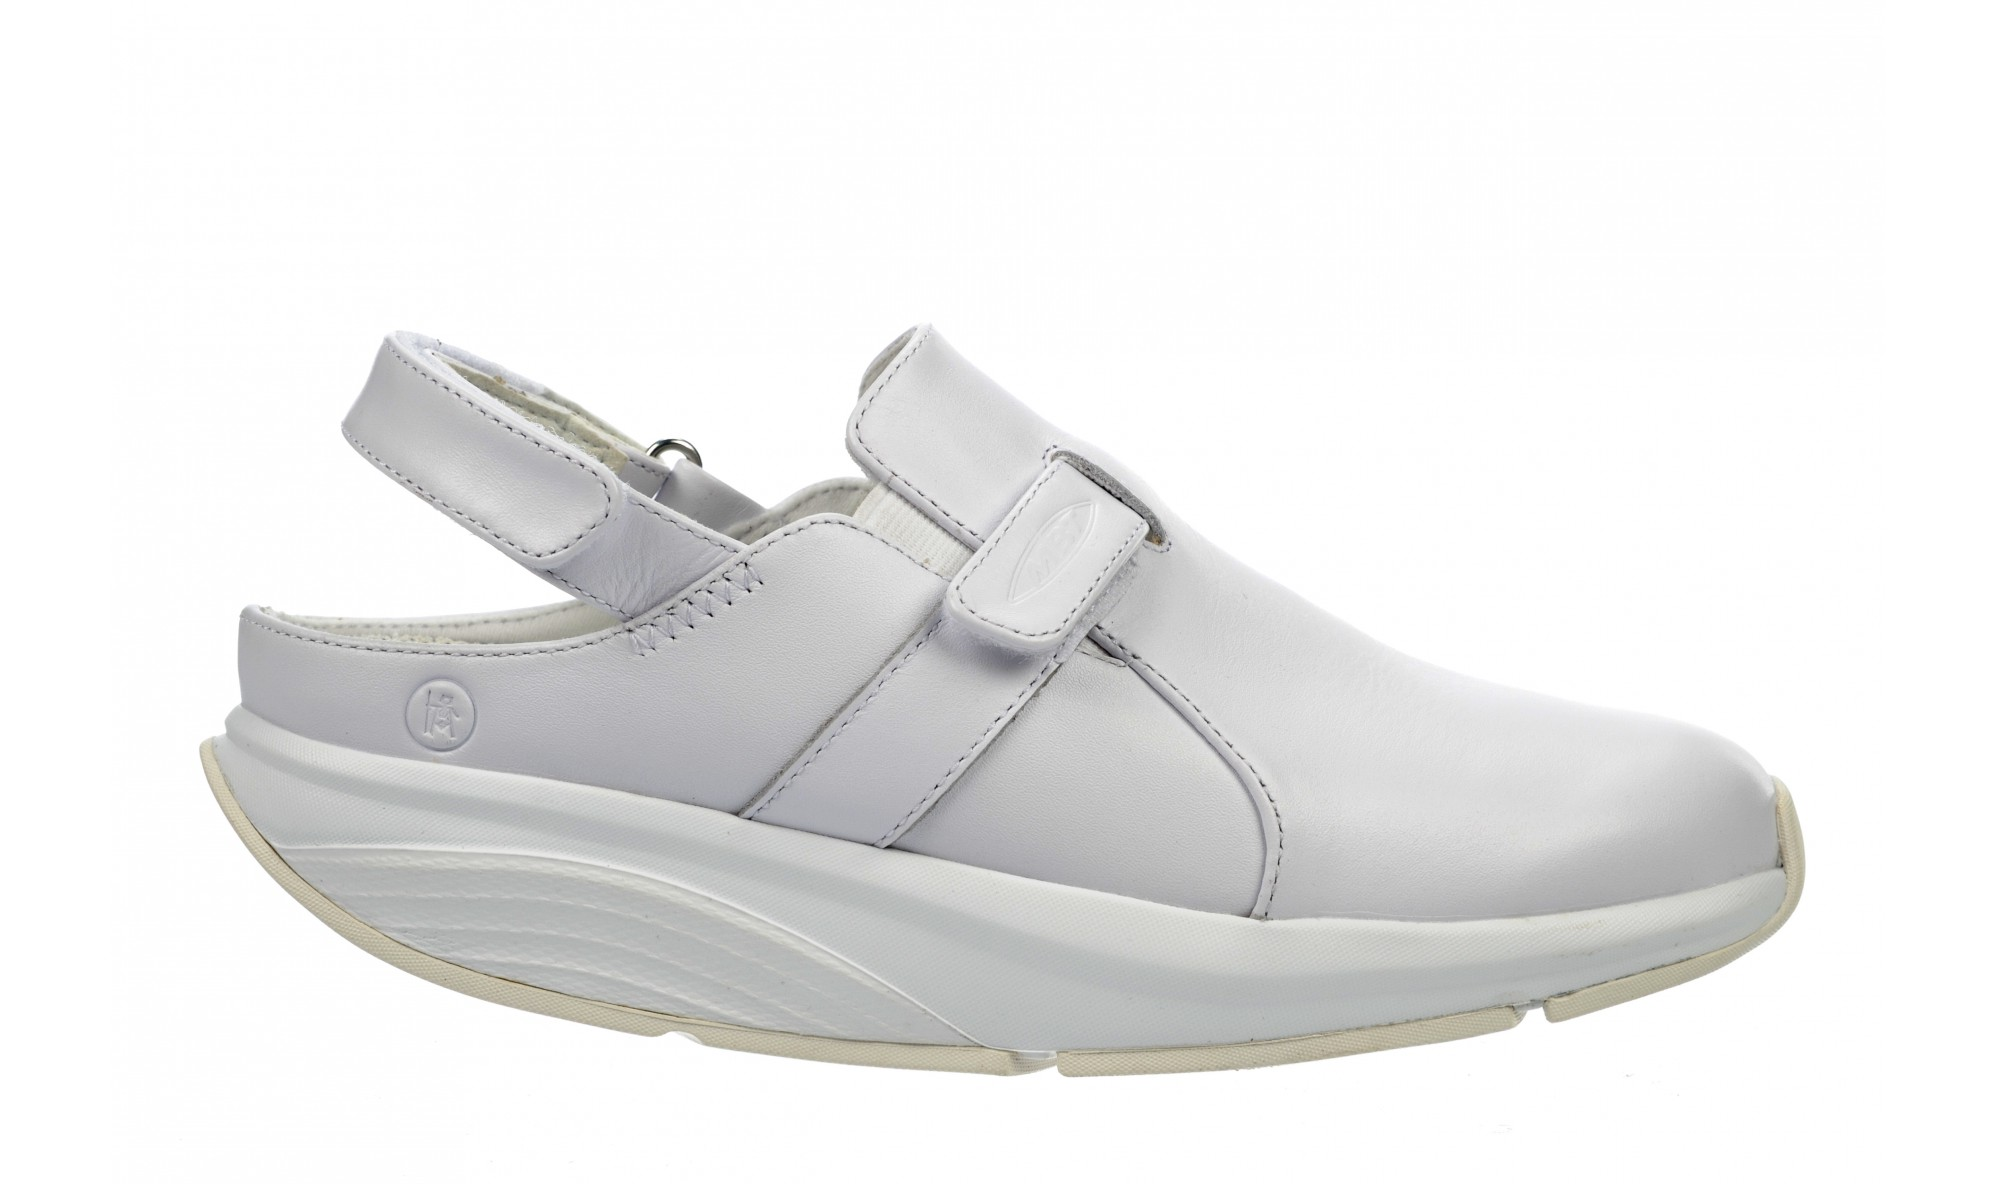 MBT Women's Flua Clog White